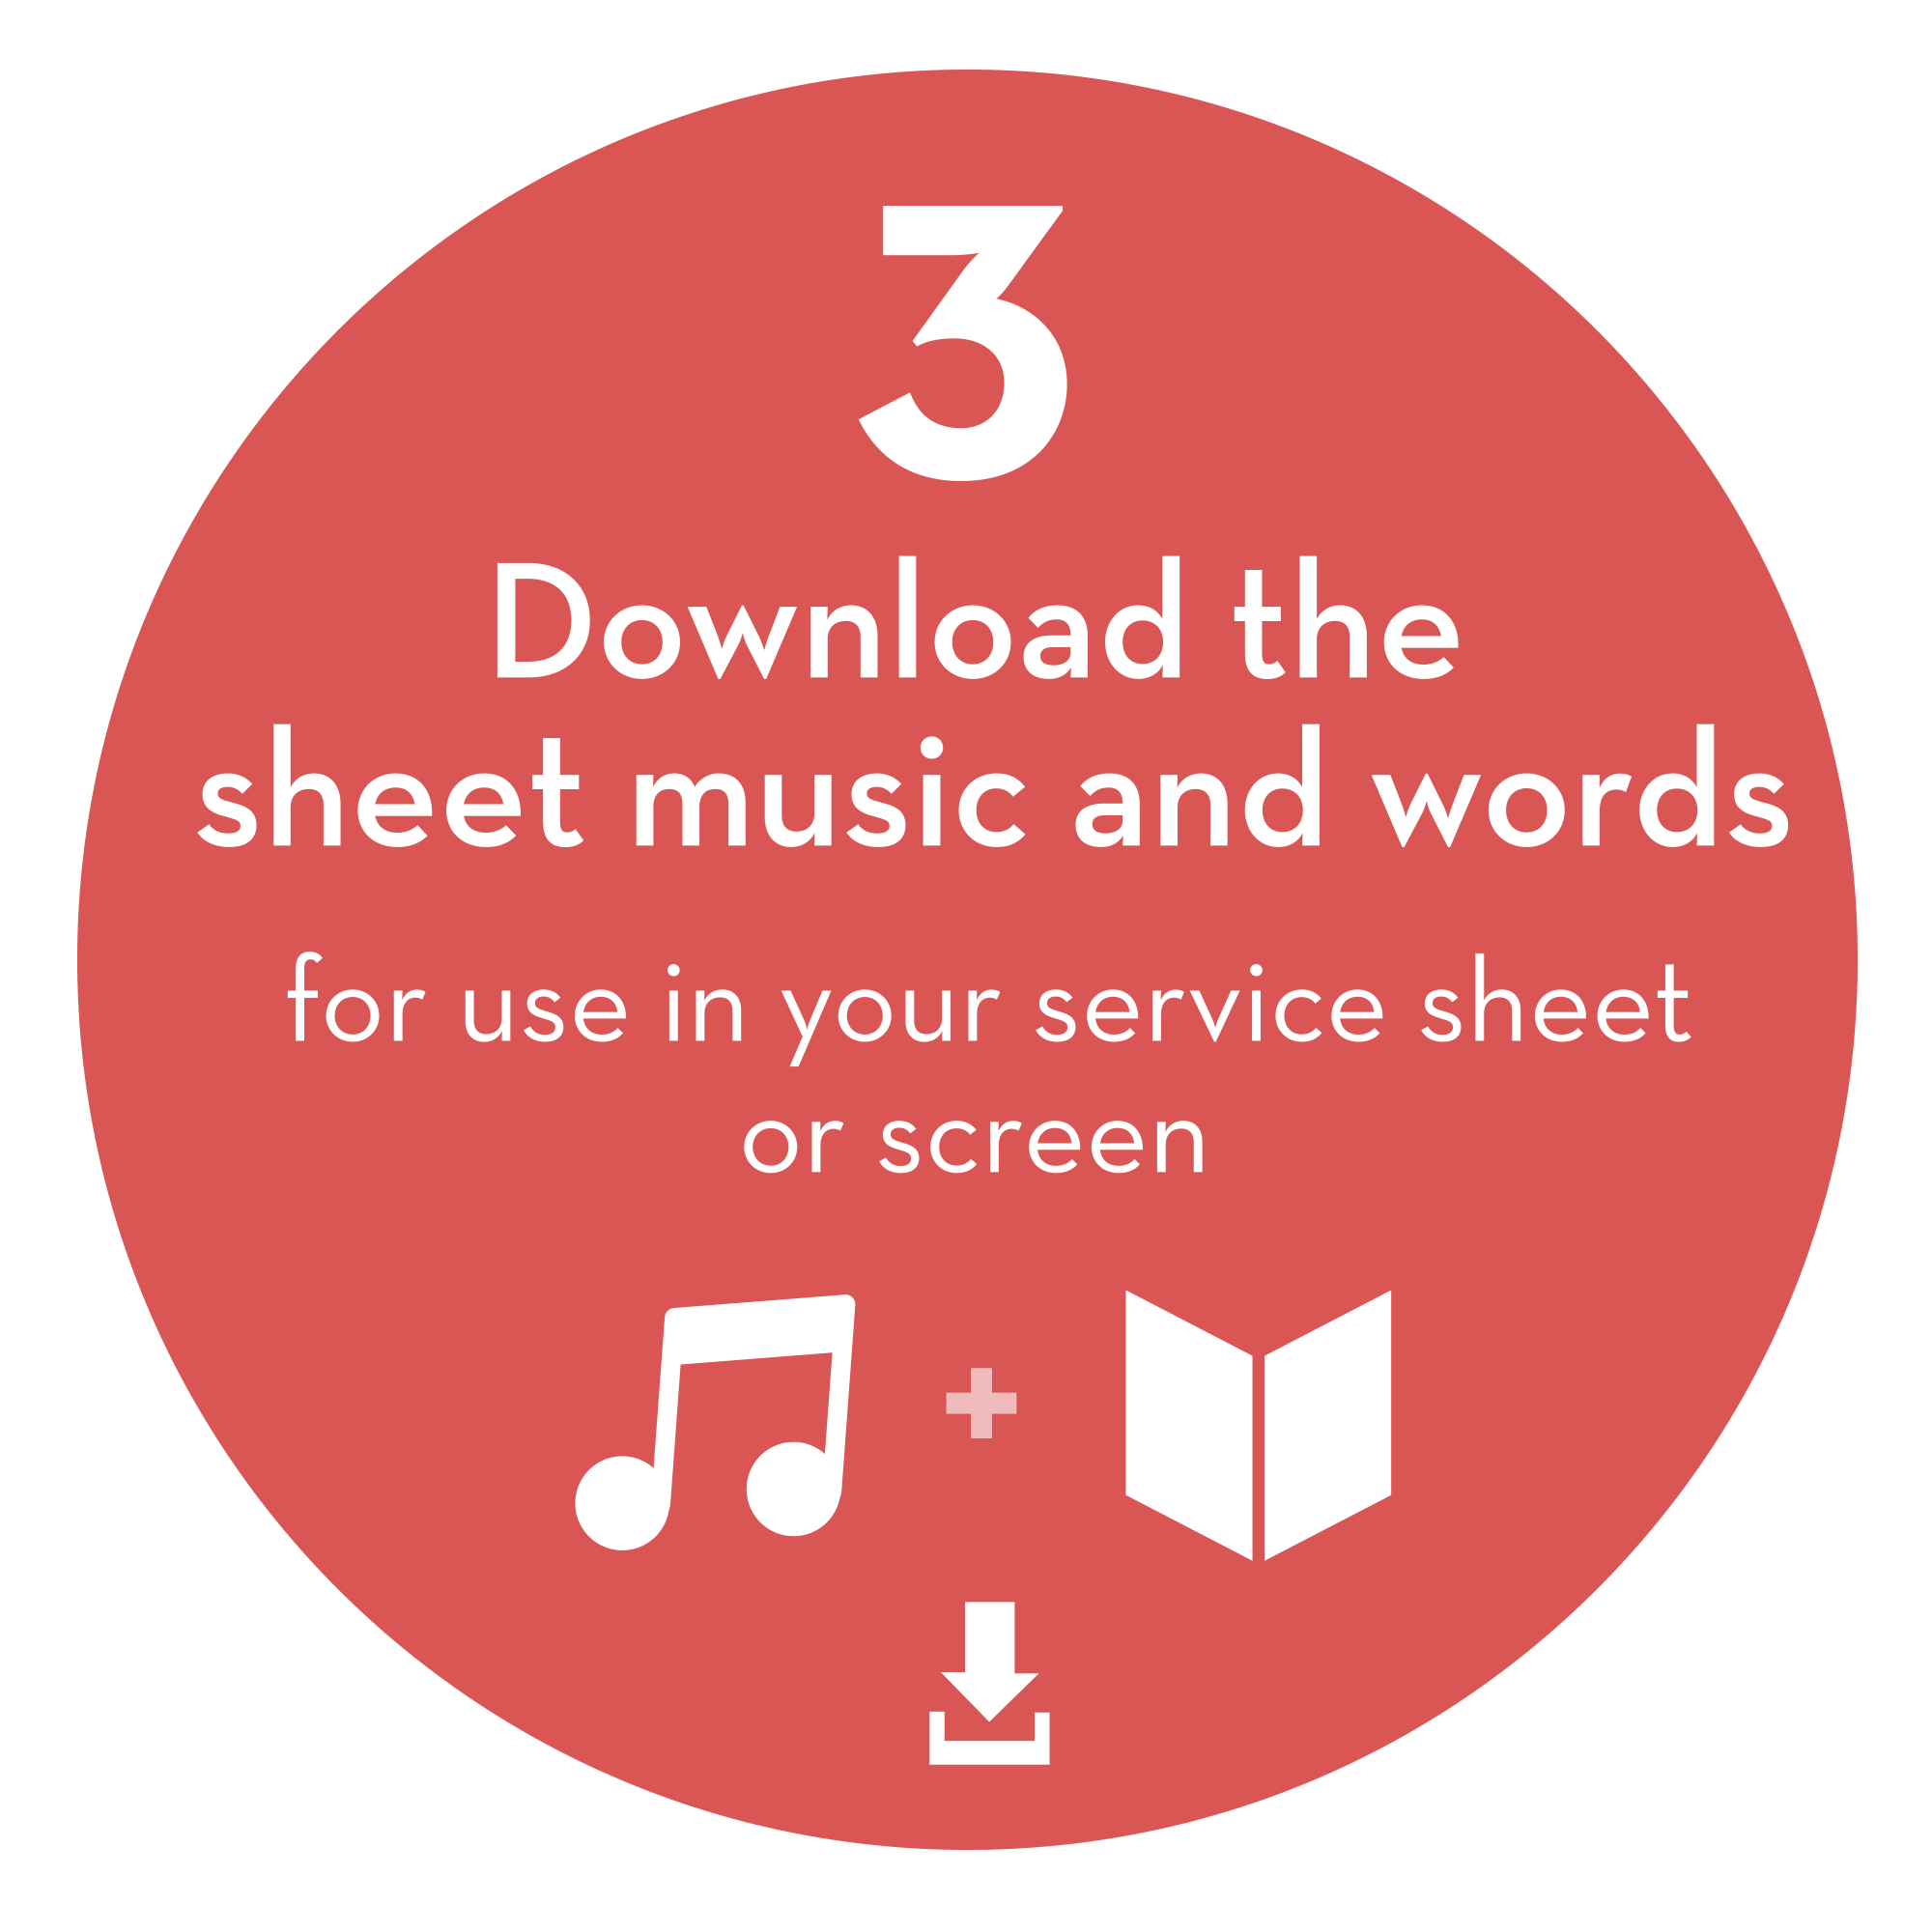 Step 3: Download the sheet music and words